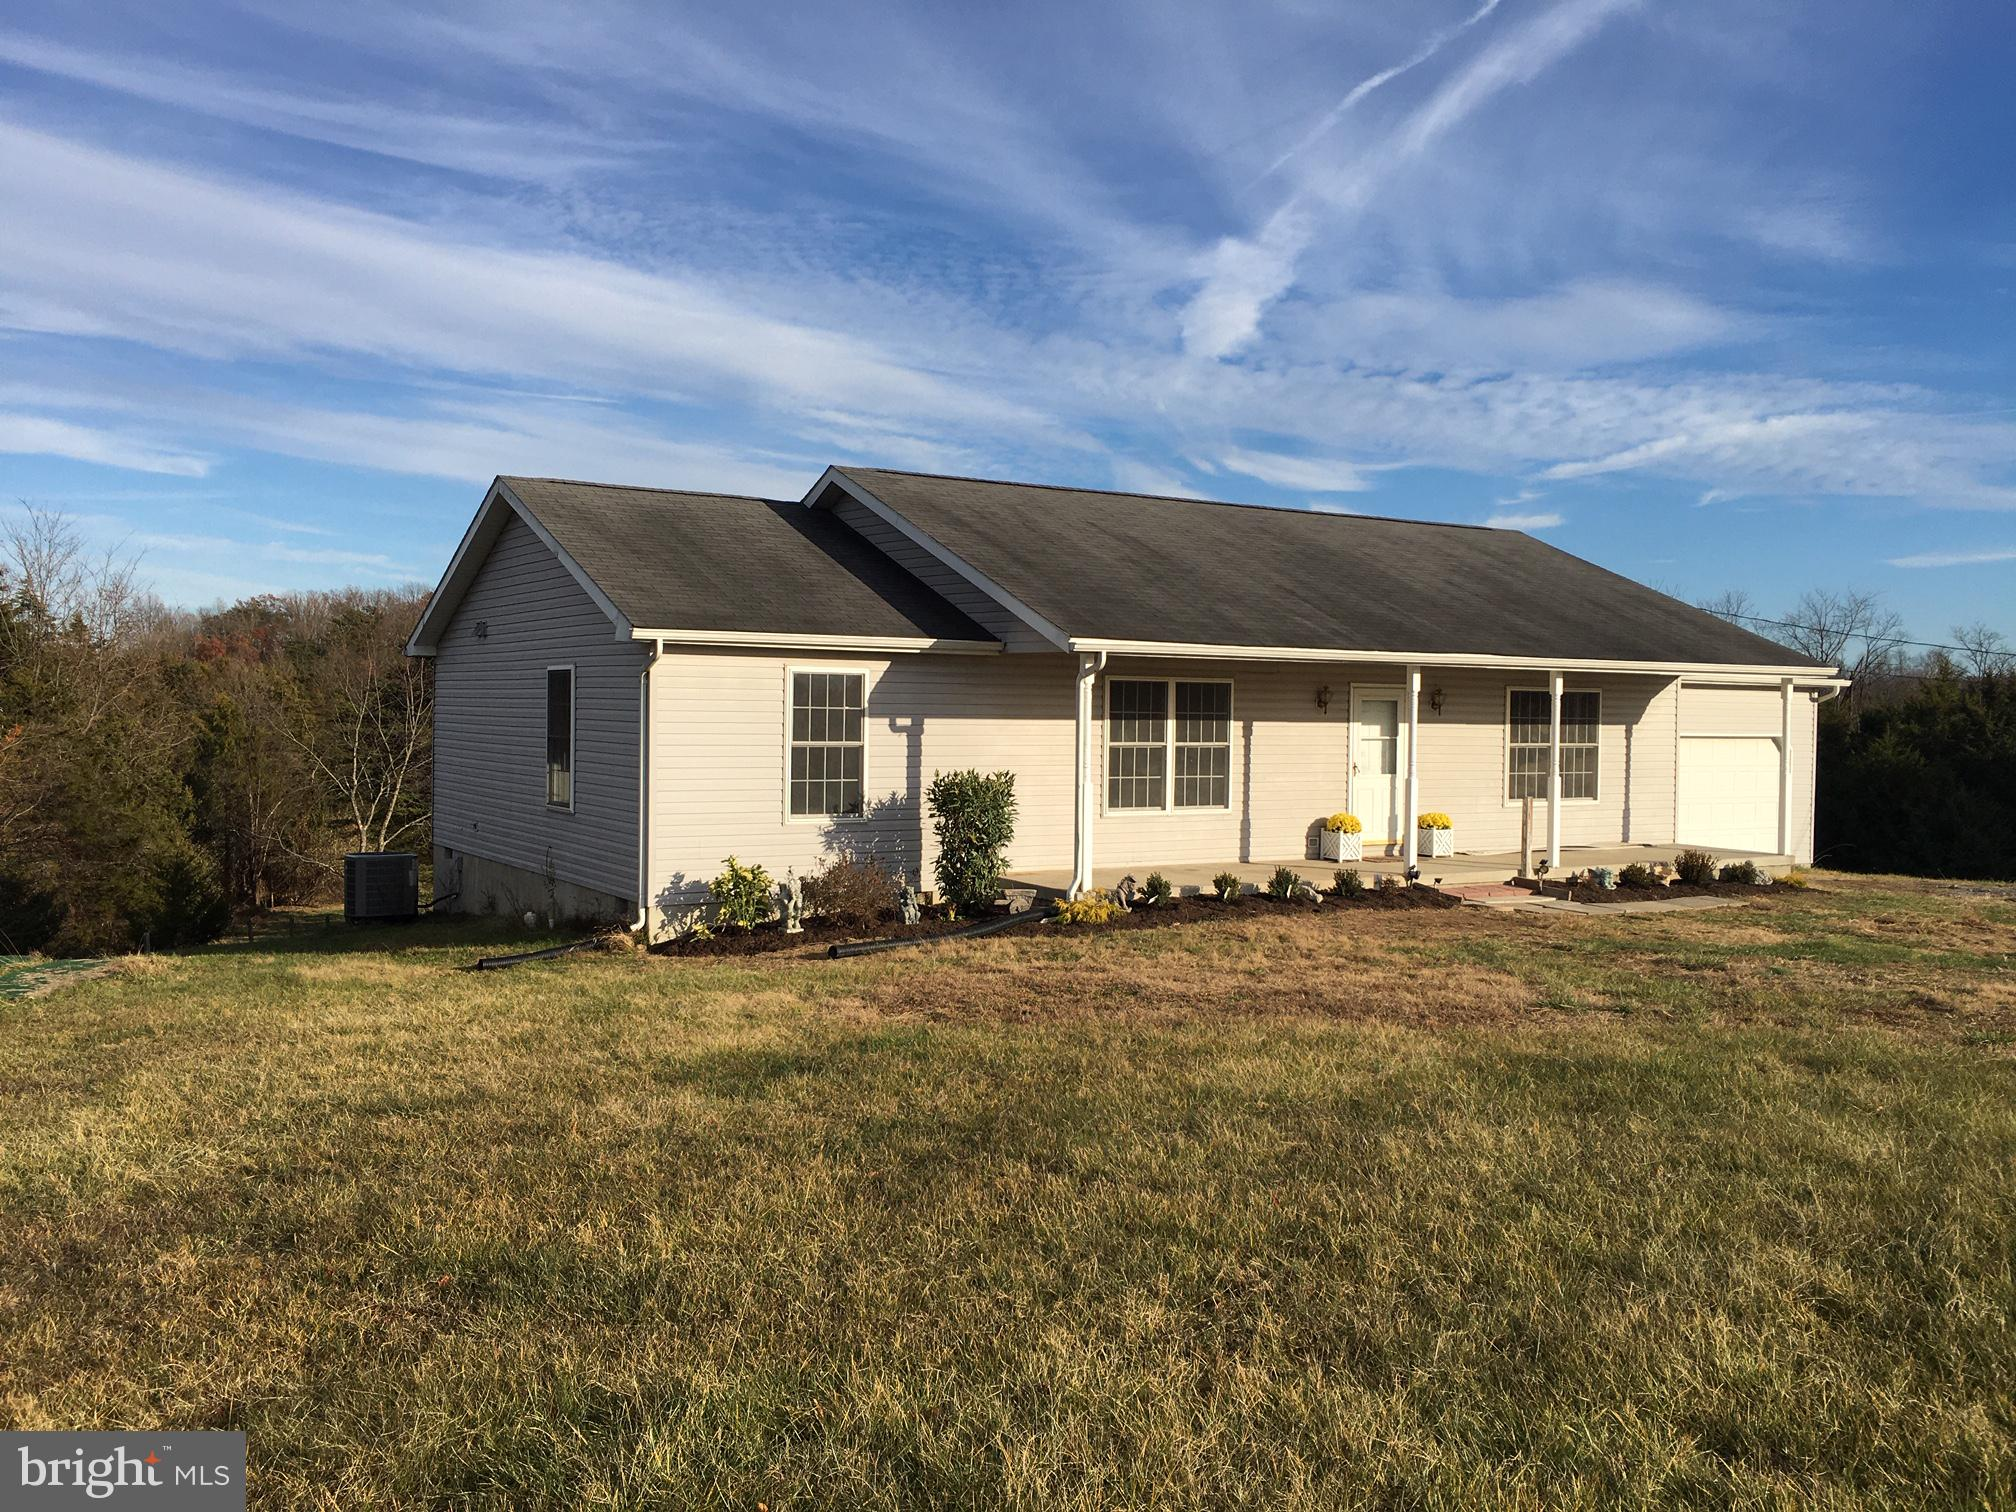 Completely Remodeled! Open concept Ranch Country Home on 5 acres in rural Stephens City, VA - perfect for the Equine enthusiast or start your Farmette! 3 Bedroom, 2 Bath, 1492 sq ft with attached garage & automatic door opener, . Nestled in the Norther Shenadoah Valley with Spectacular mountain views on horizon over open pastures.Nice country home all on one floor - Simple Luxury!All LED lighting throughout home with dimmable Kitchen light. Motion light upon entry from garage so no hands needed to turn a switch when you hands are full. Hardwood flooring throughout with tile in kitchen, both baths and laundry room. Upgraded Kitchen with High end, solid wood, extra tall cabinets. Brushed Nickel fixtures, Soft close toilet seats/lids. New electric smoke detectors with battery back up. Ducts cleaned and sanitized. This home is move-in ready!!Very close to I-81 & I-66. Convenient to Schools, Shopping and very nice Parks